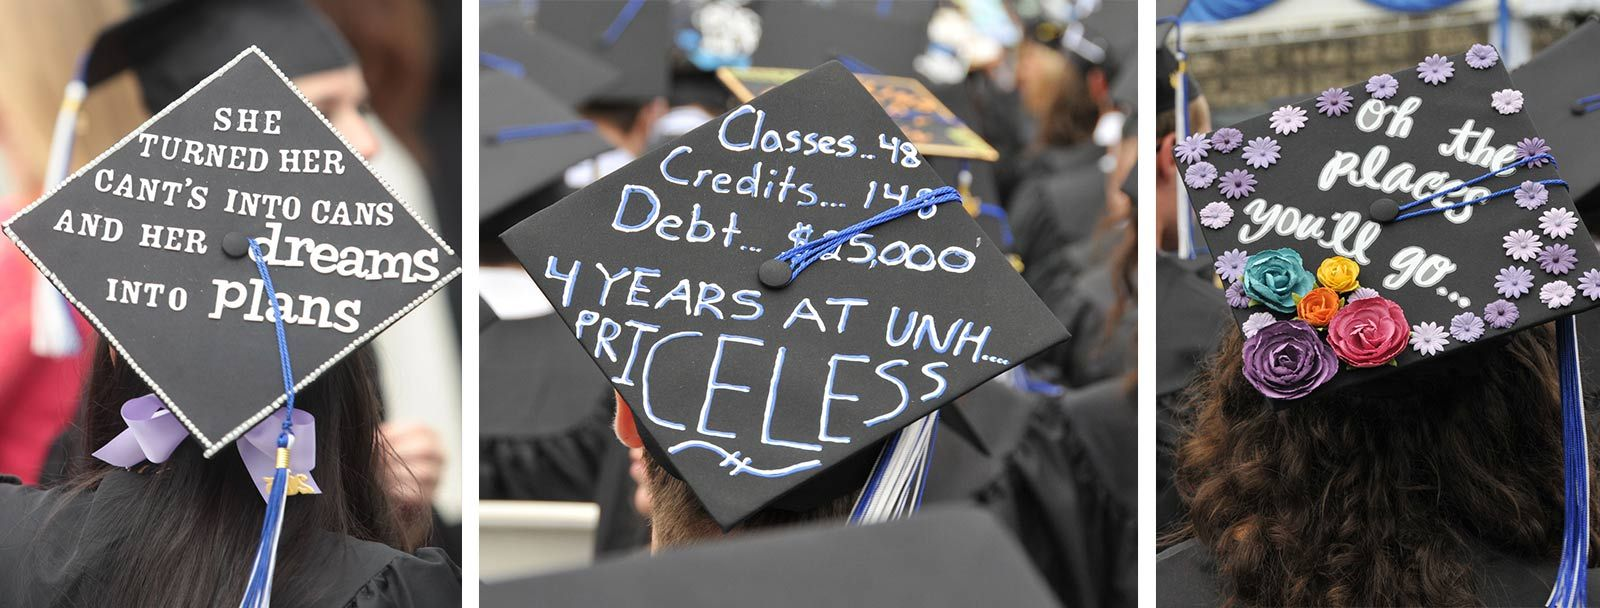 The mortarboards of UNH commencement 2015